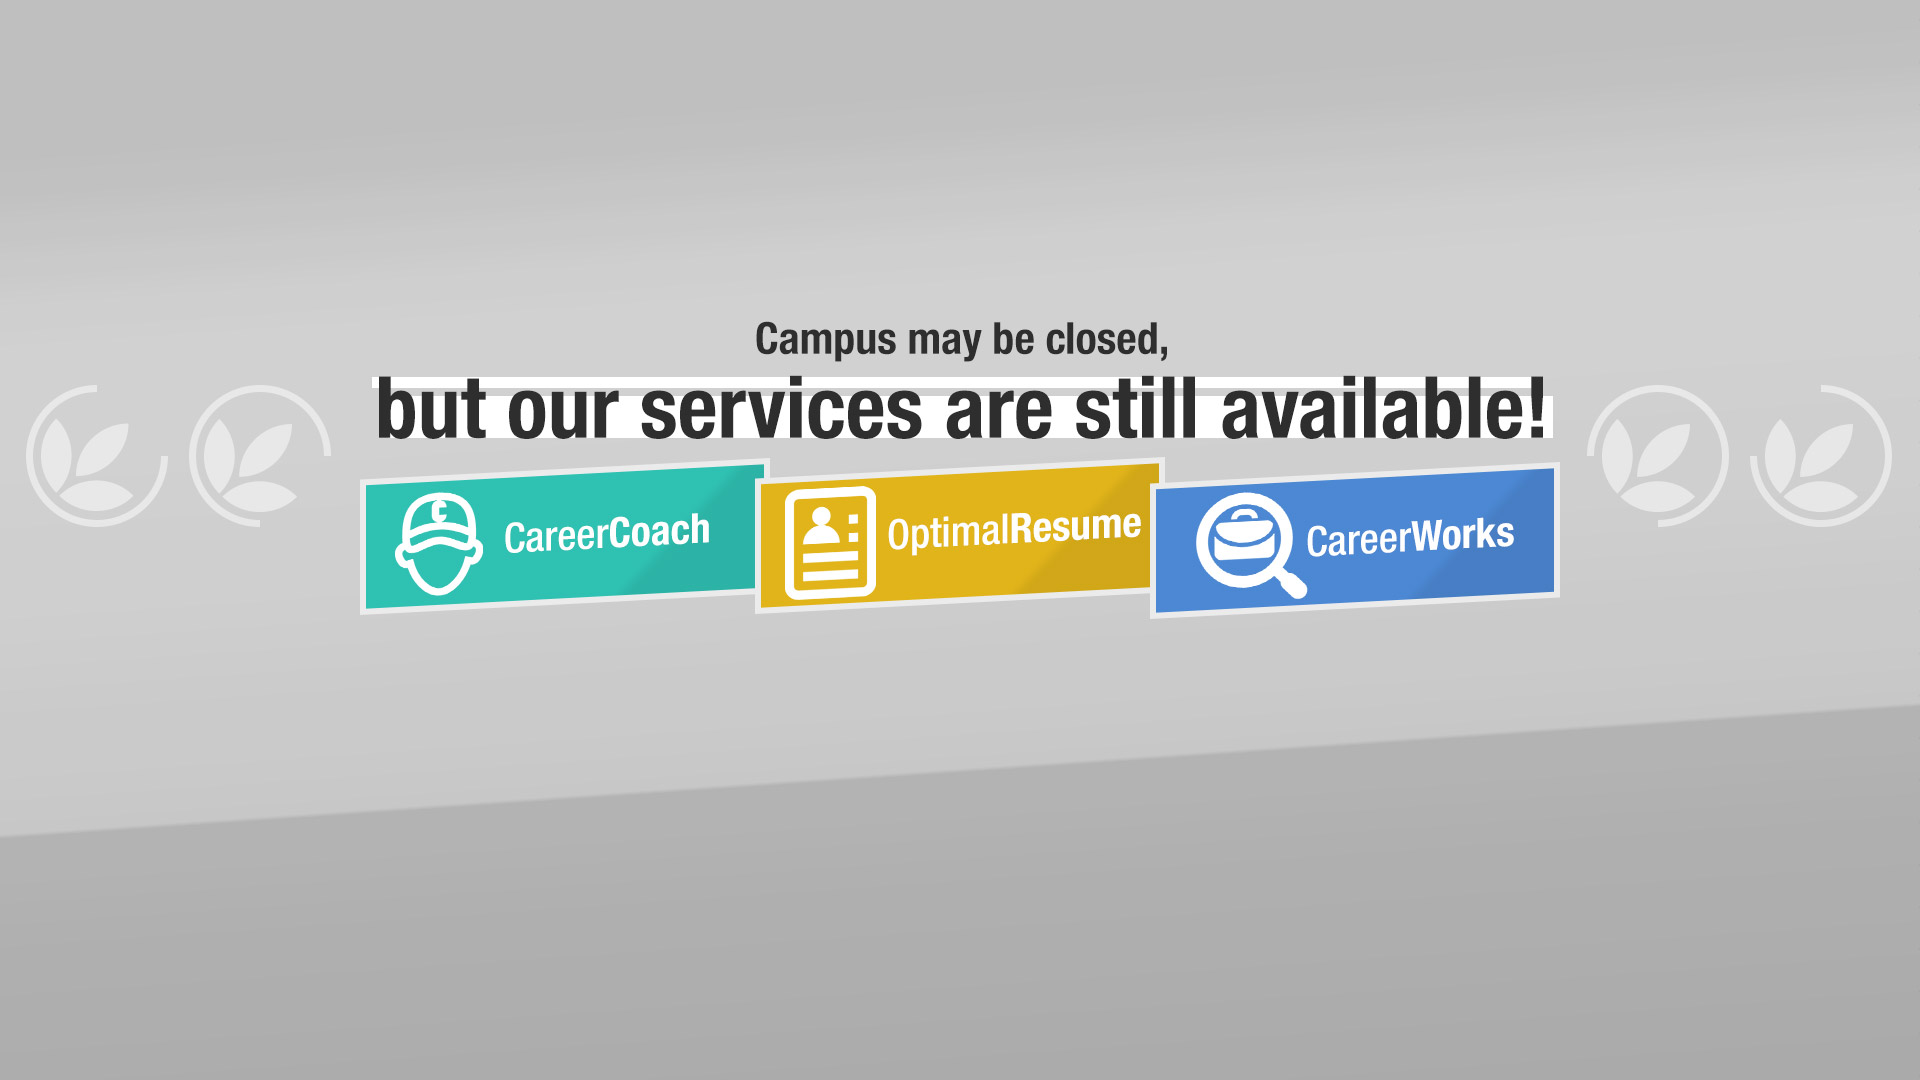 Campus may be closed, but our services are still available! Take advantage of our free online tools!